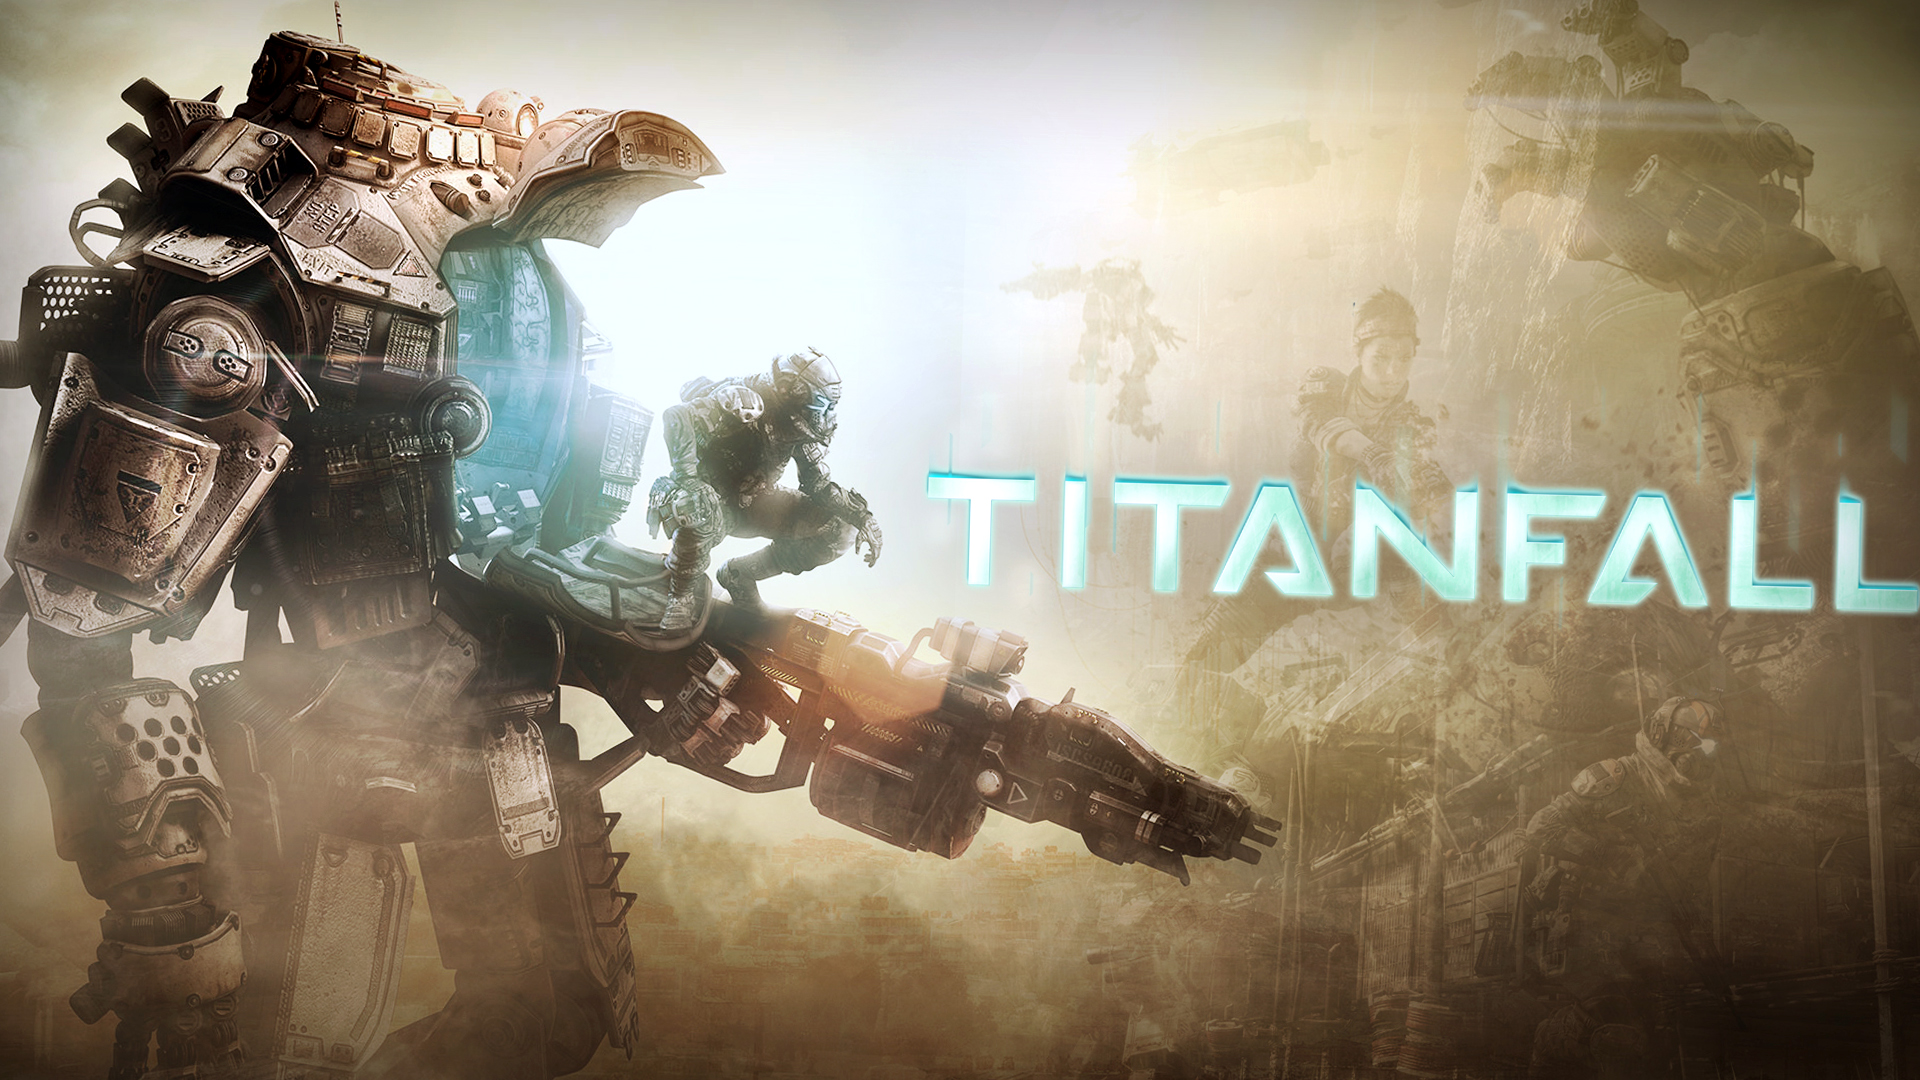 Cool Cars Wallpaper With Girls Cool Titanfall Game Cover Wallpapers Hd Desktop And